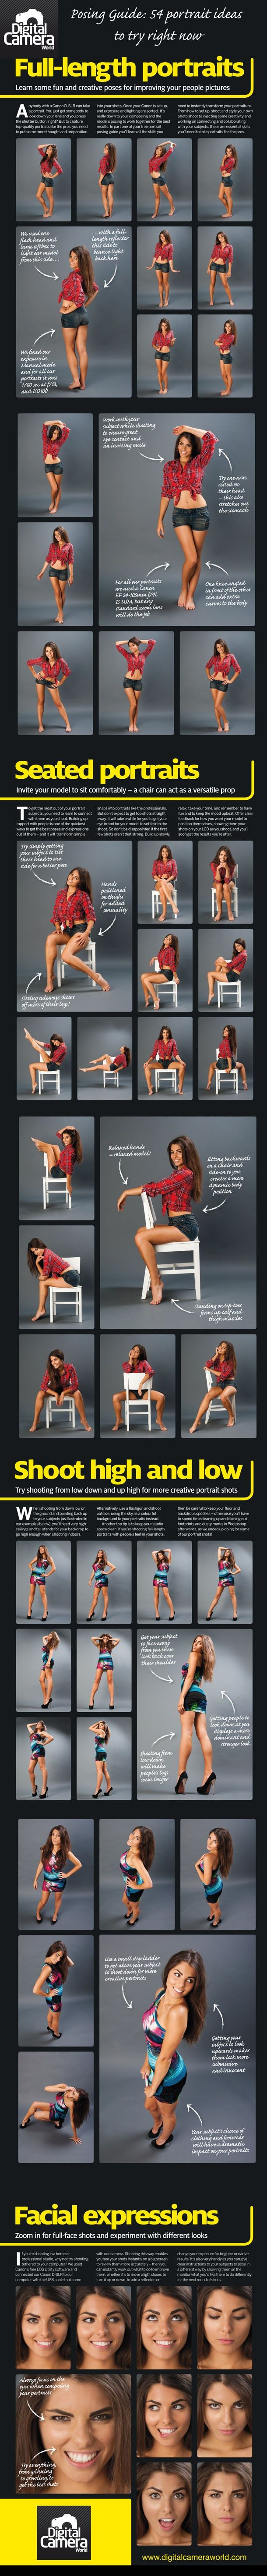 54 Very Creative Poses...Click Picture To See More...: Senior Picture, Idea, Senior Photo, Posing Guide, Cheat Sheet